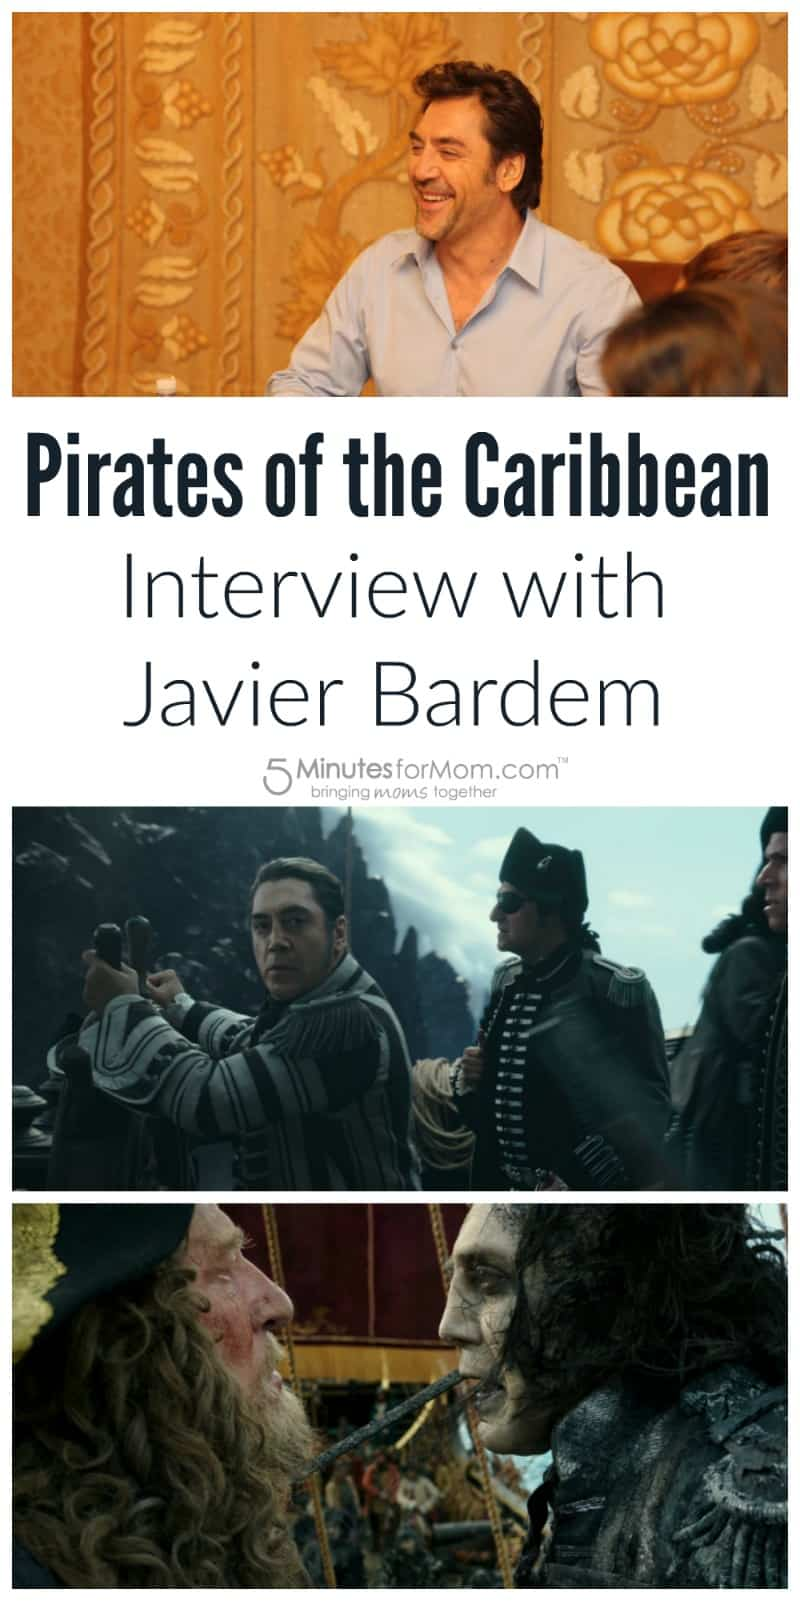 Pirates of the Caribbean Interview with Javier Bardem